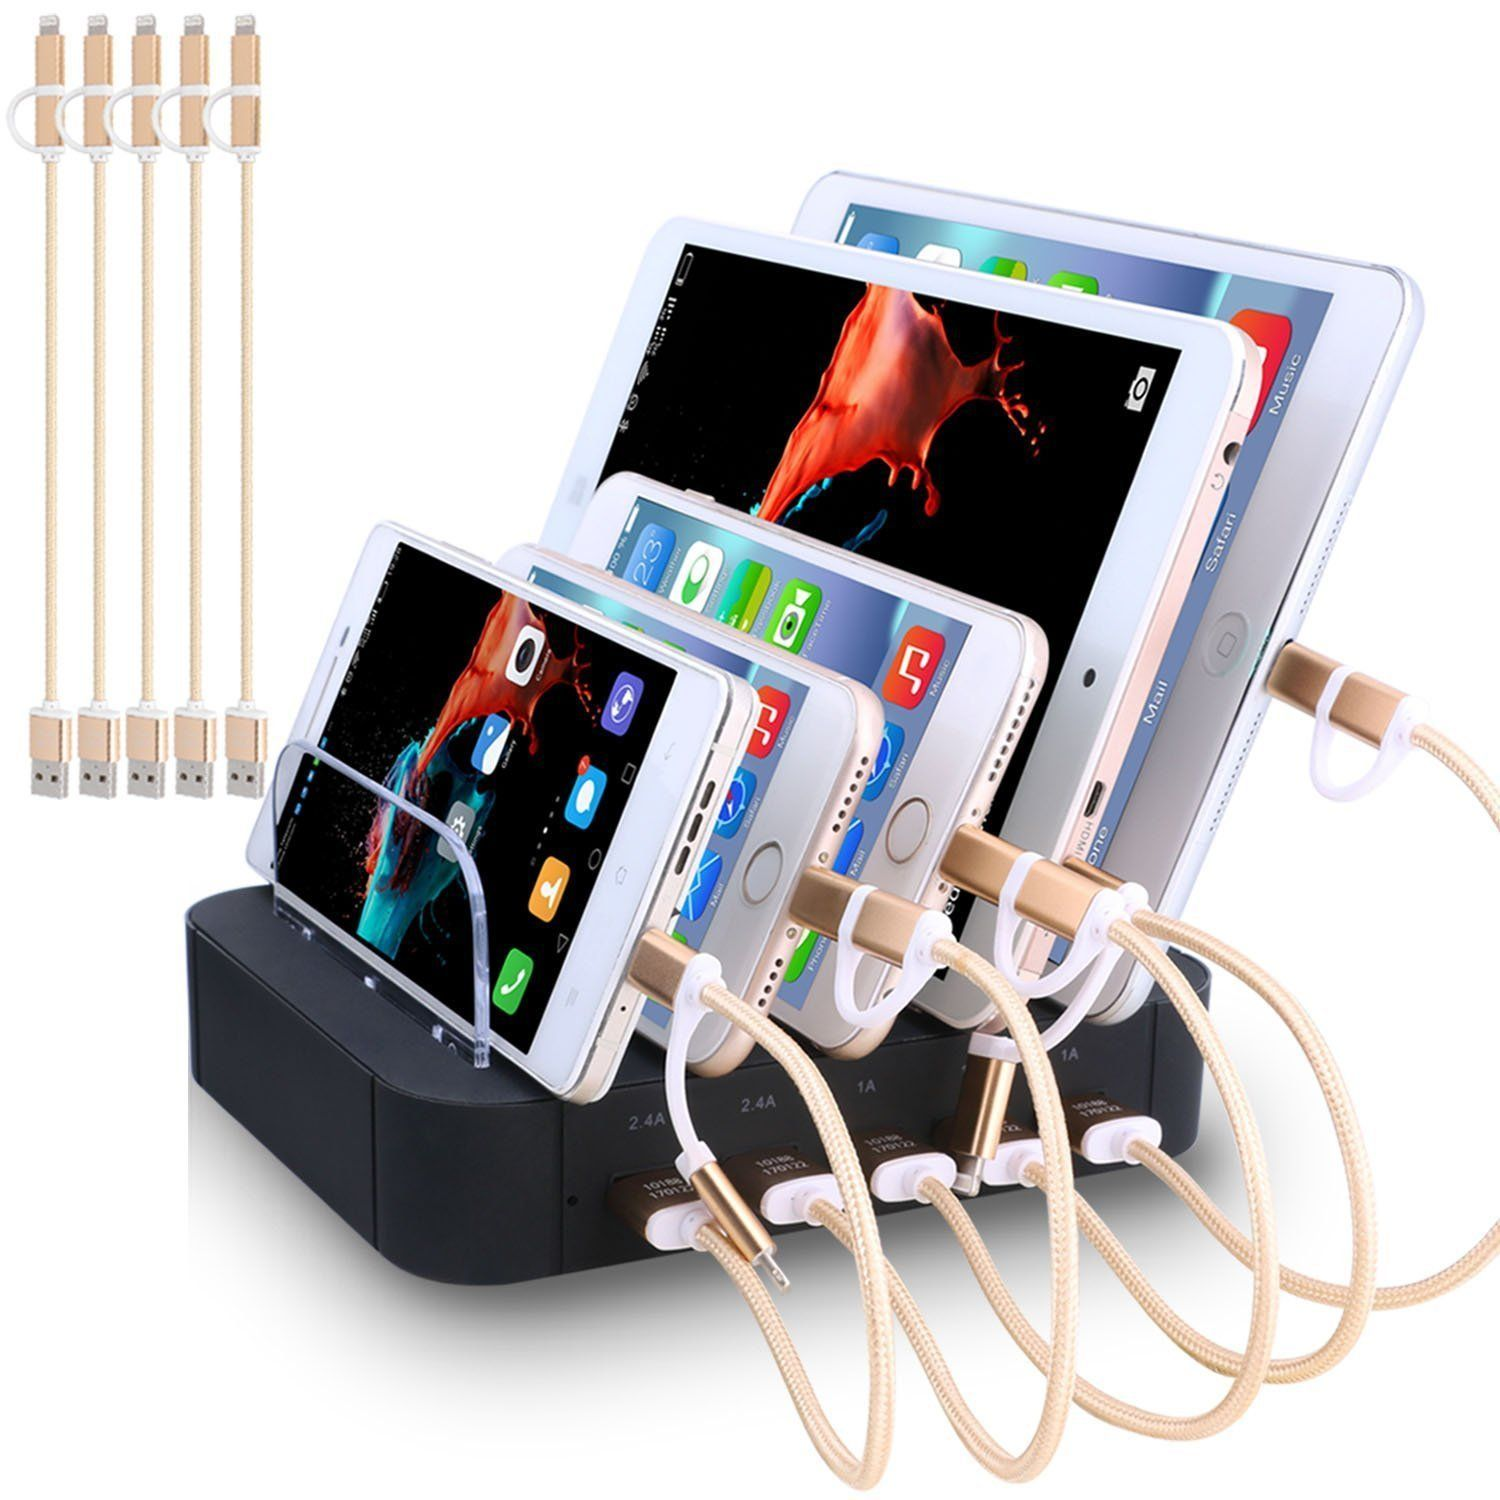 Charging station 5 port usb charger quick charge dock